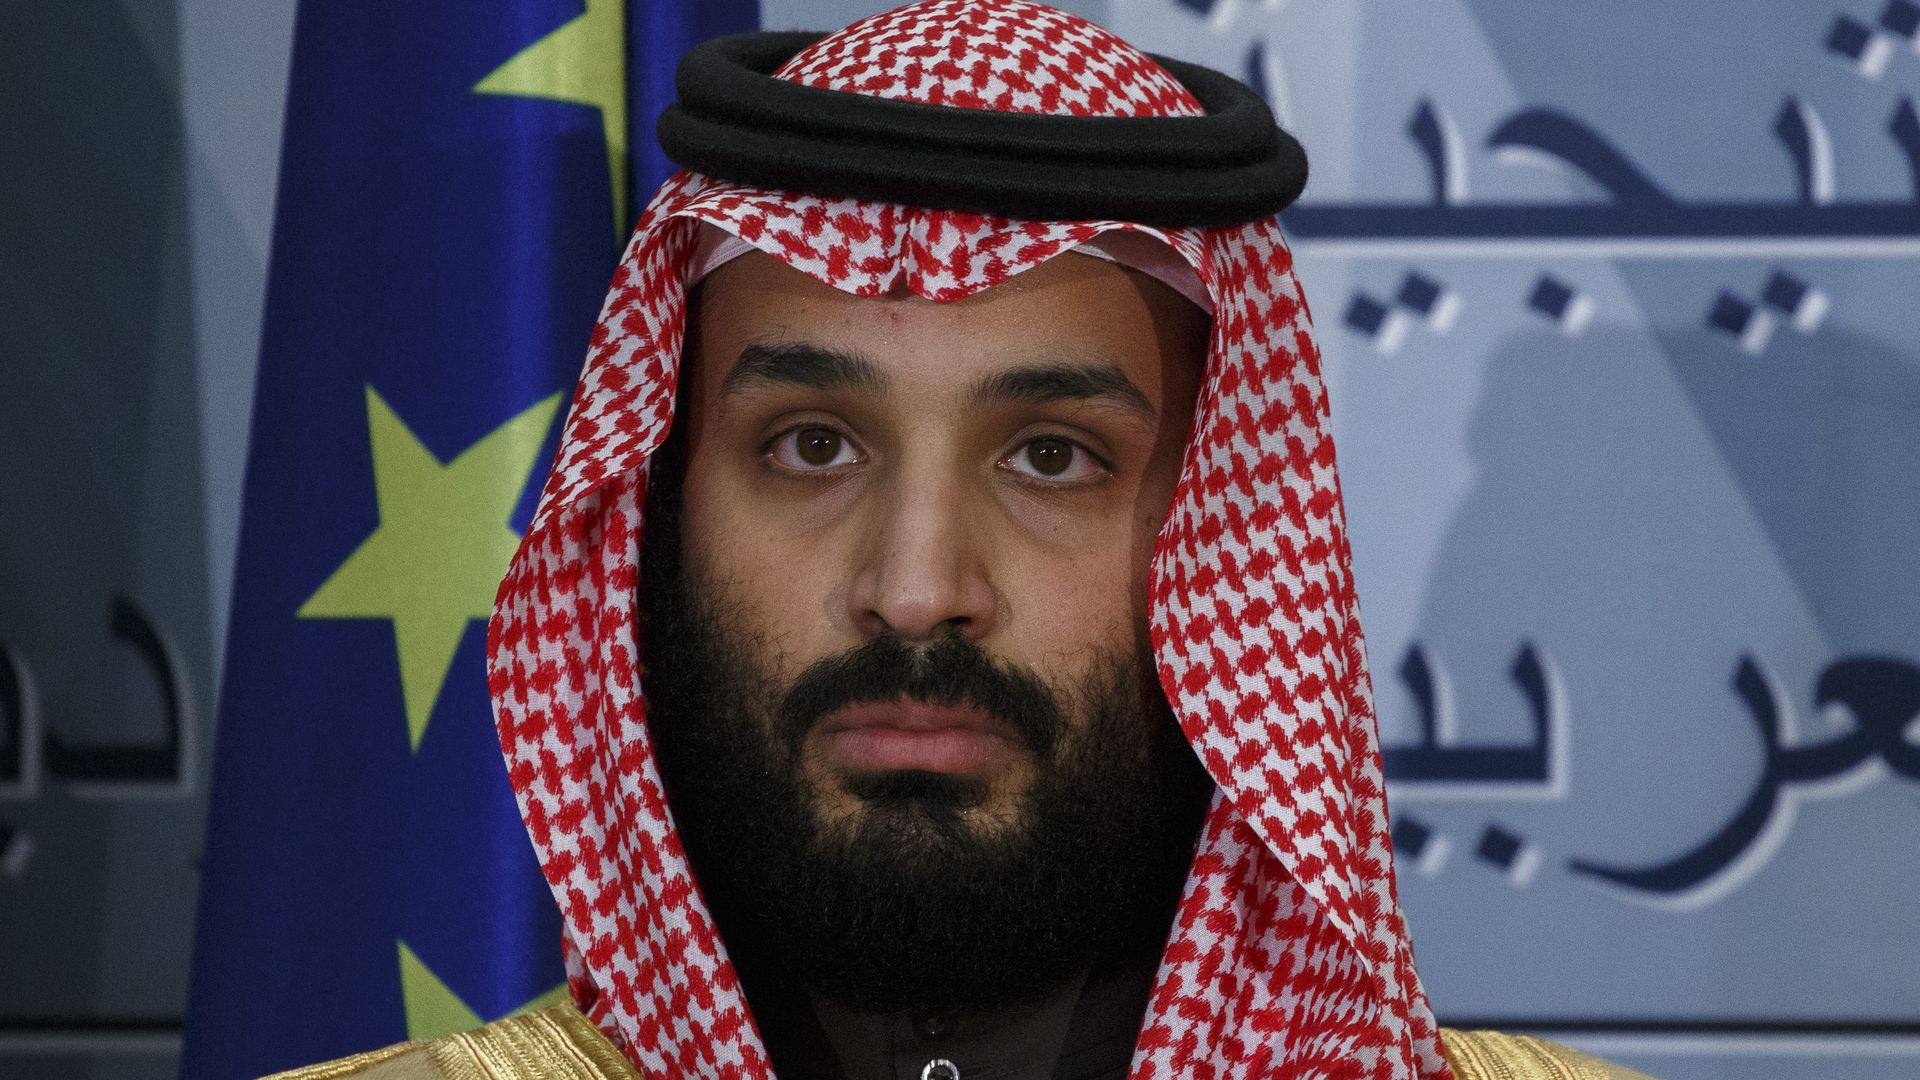 Saudi Arabia Crown Prince Mohammed bin Salman looks on during a ceremony